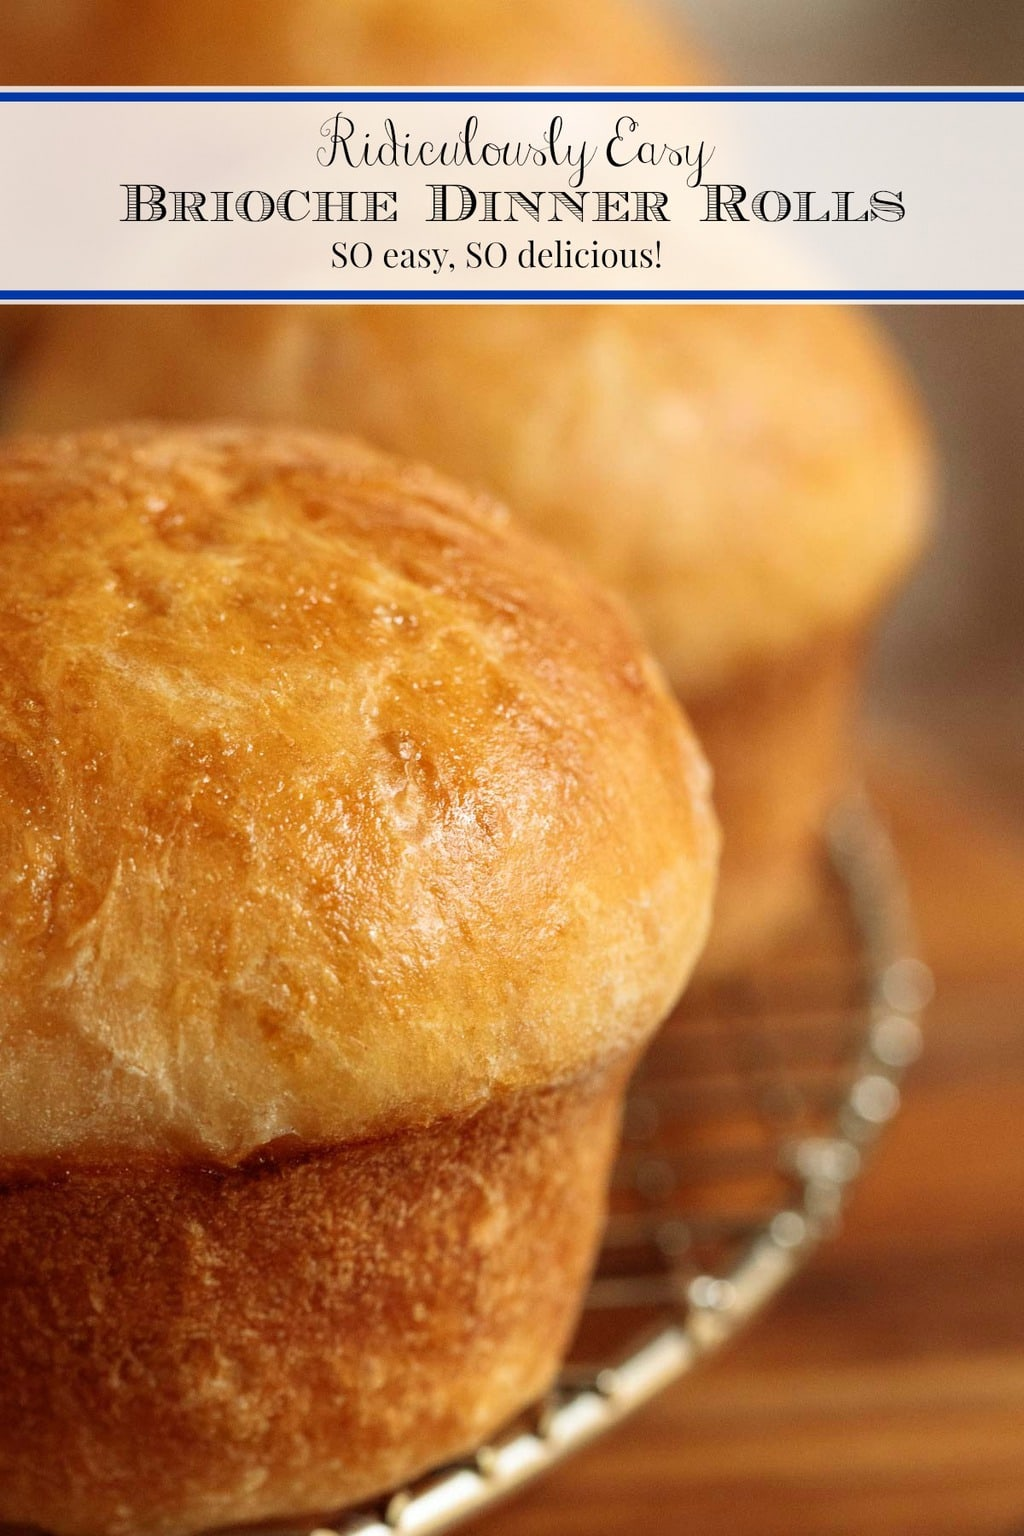 Ridiculously Easy Brioche Dinner Rolls